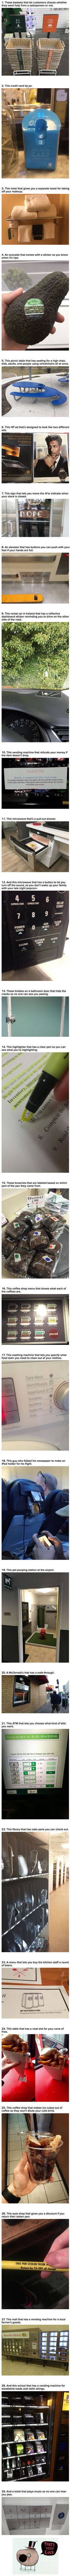 "29 Things That Will Make You Say ""Damn, That's So Smart"" - 9GAG"